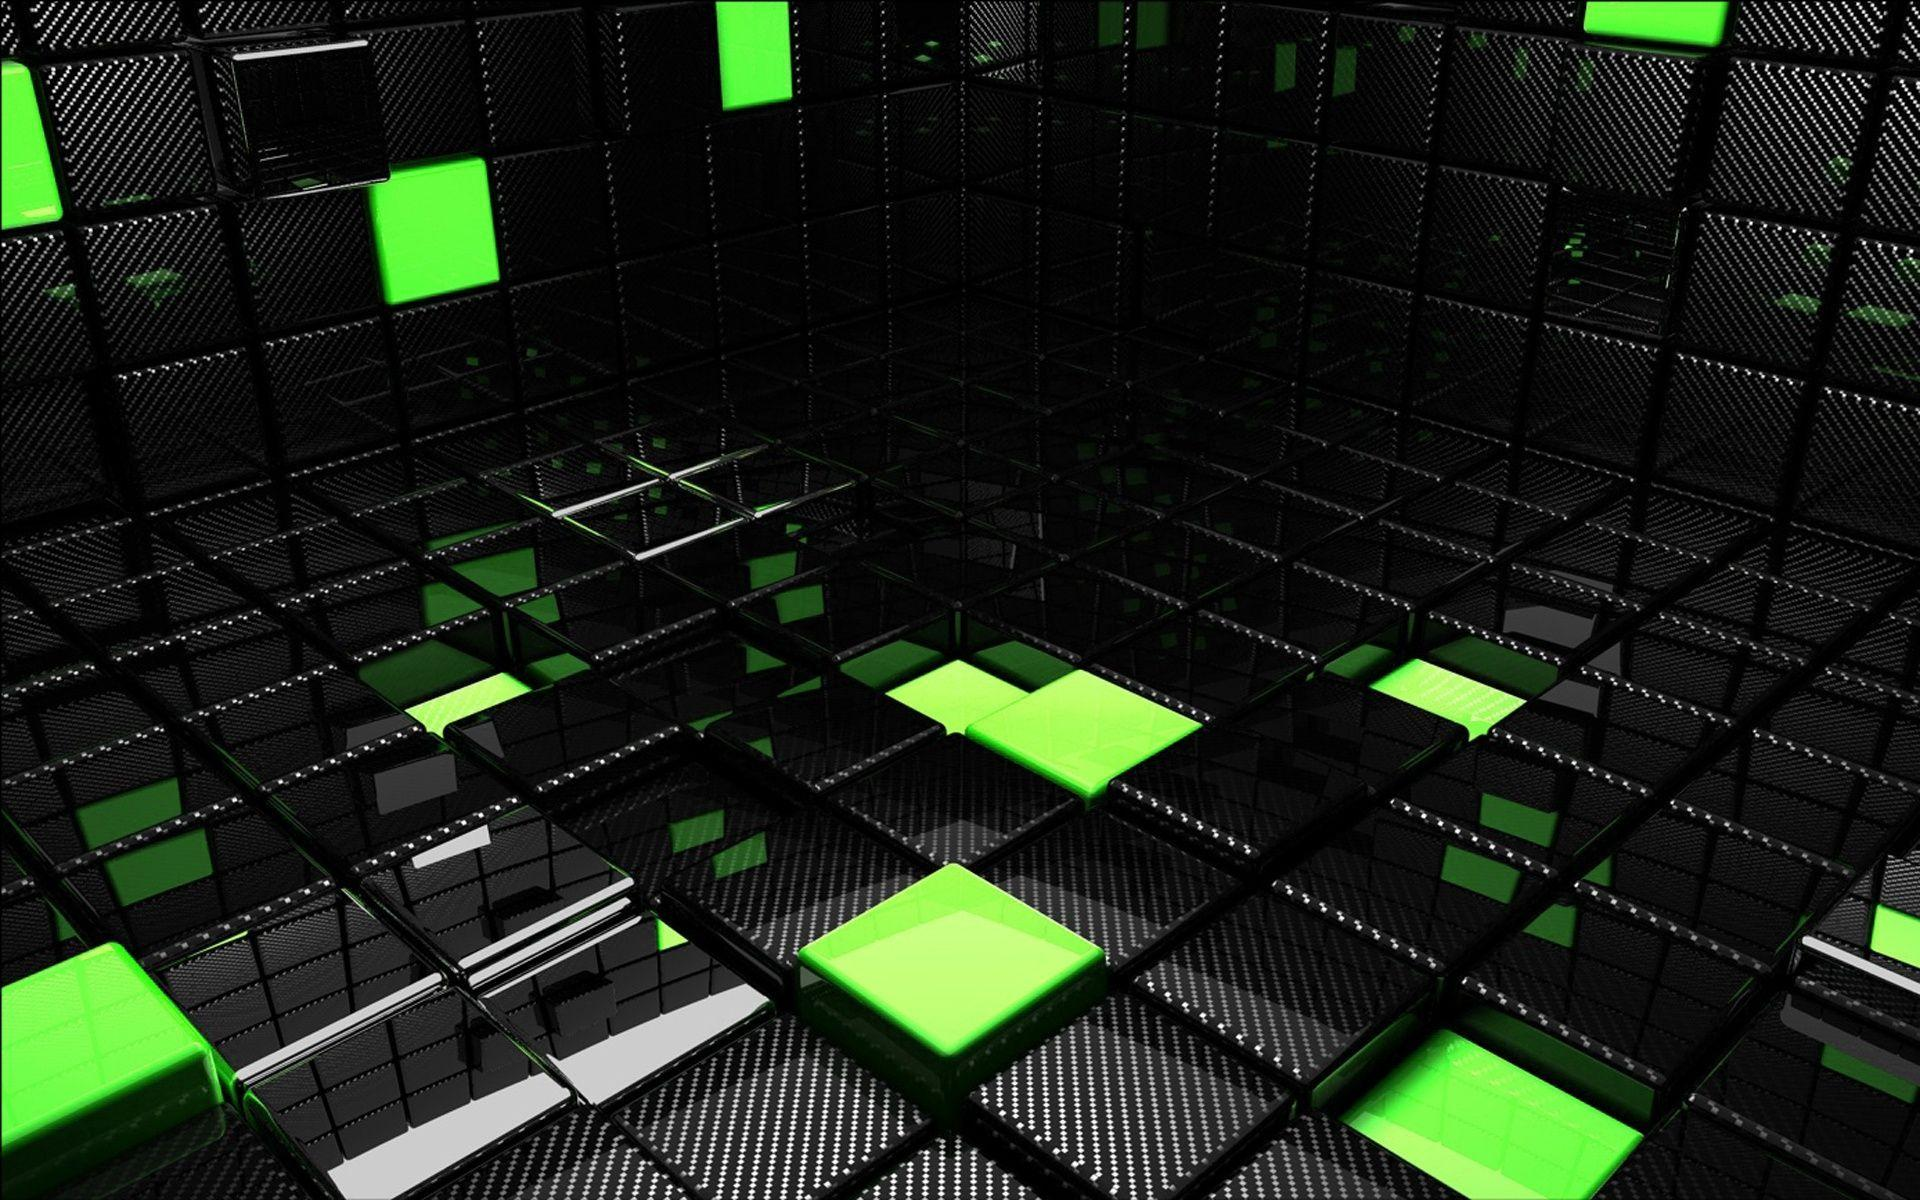 Black Cool Backgrounds - Wallpaper CaveBlack And Lime Green Backgrounds